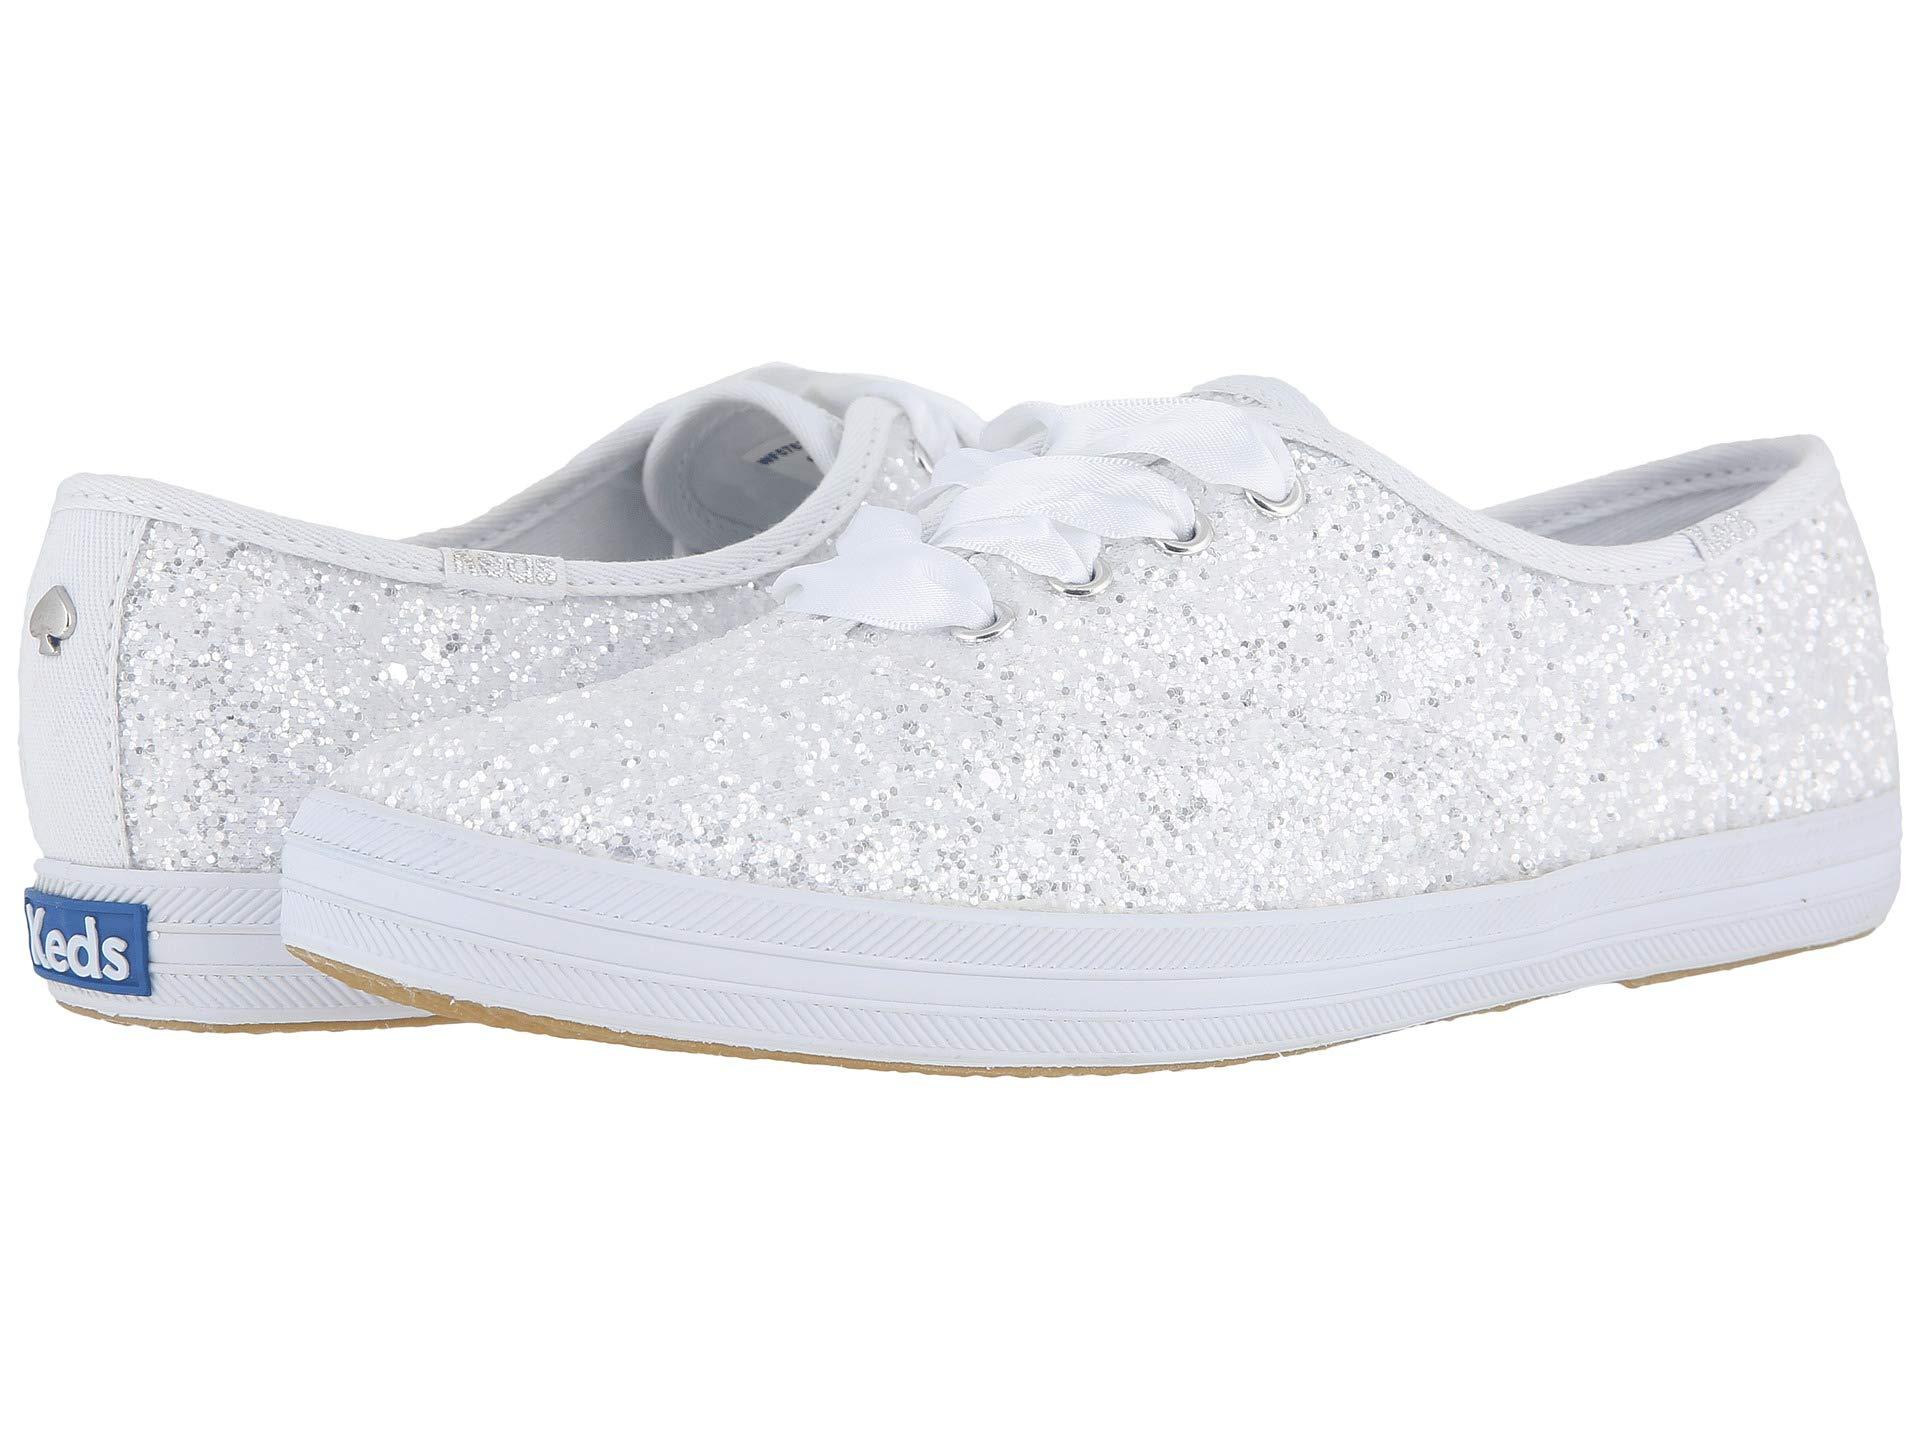 58114ec558d7 Keds x kate spade new york Bridal Champion Glitter at Luxury.Zappos.com